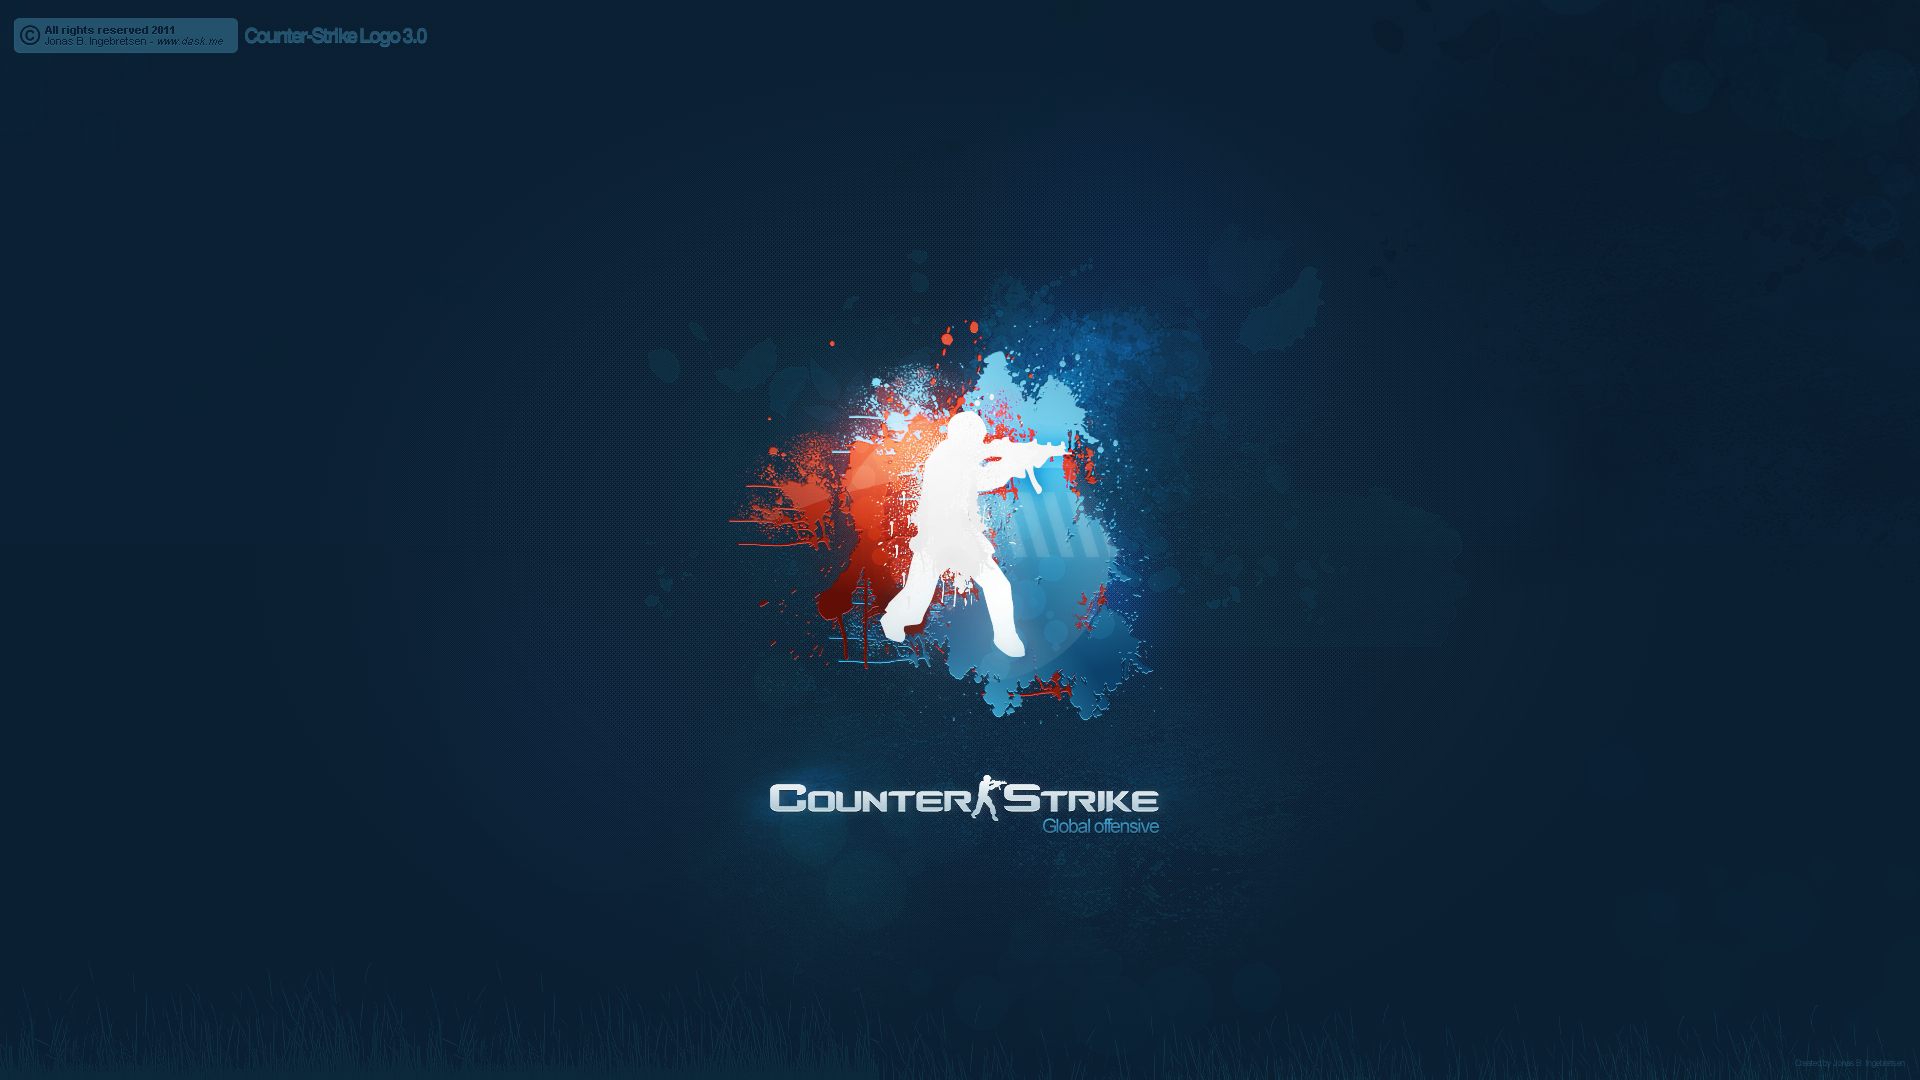 Counter Strike Global Offensive Wallpapers 1683 Game   bwallescom 1920x1080